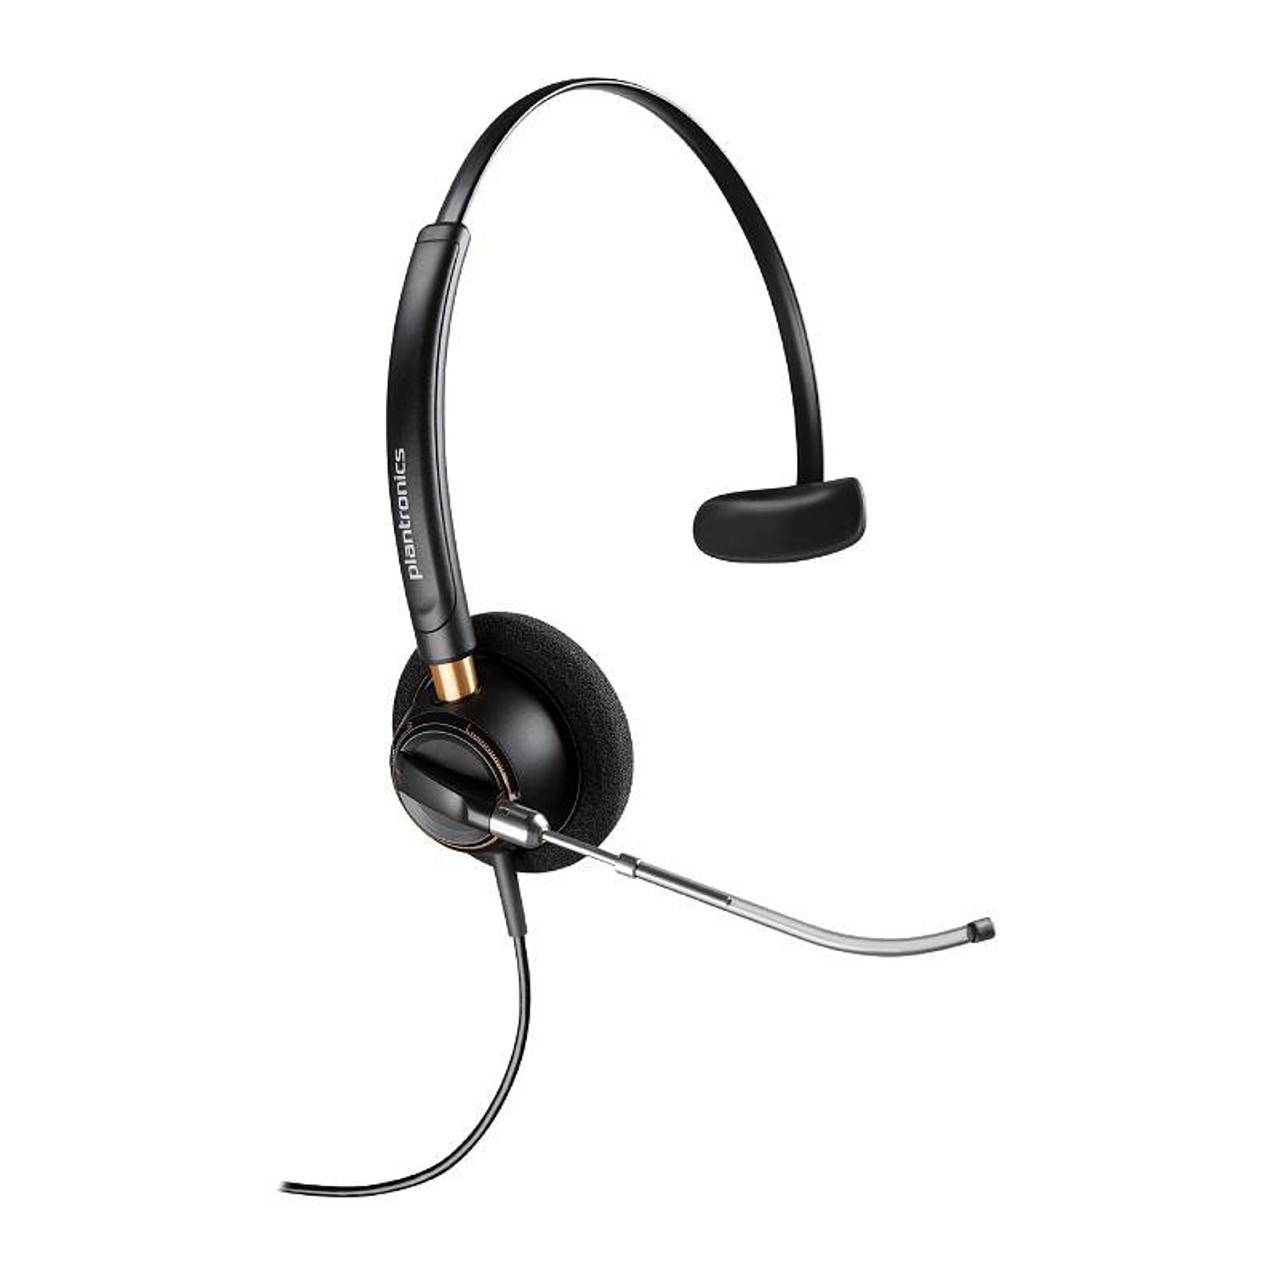 Image for Plantronics EncorePro HW520V Over-the-Head Binaural Voice Tube Corded Headset CX Computer Superstore